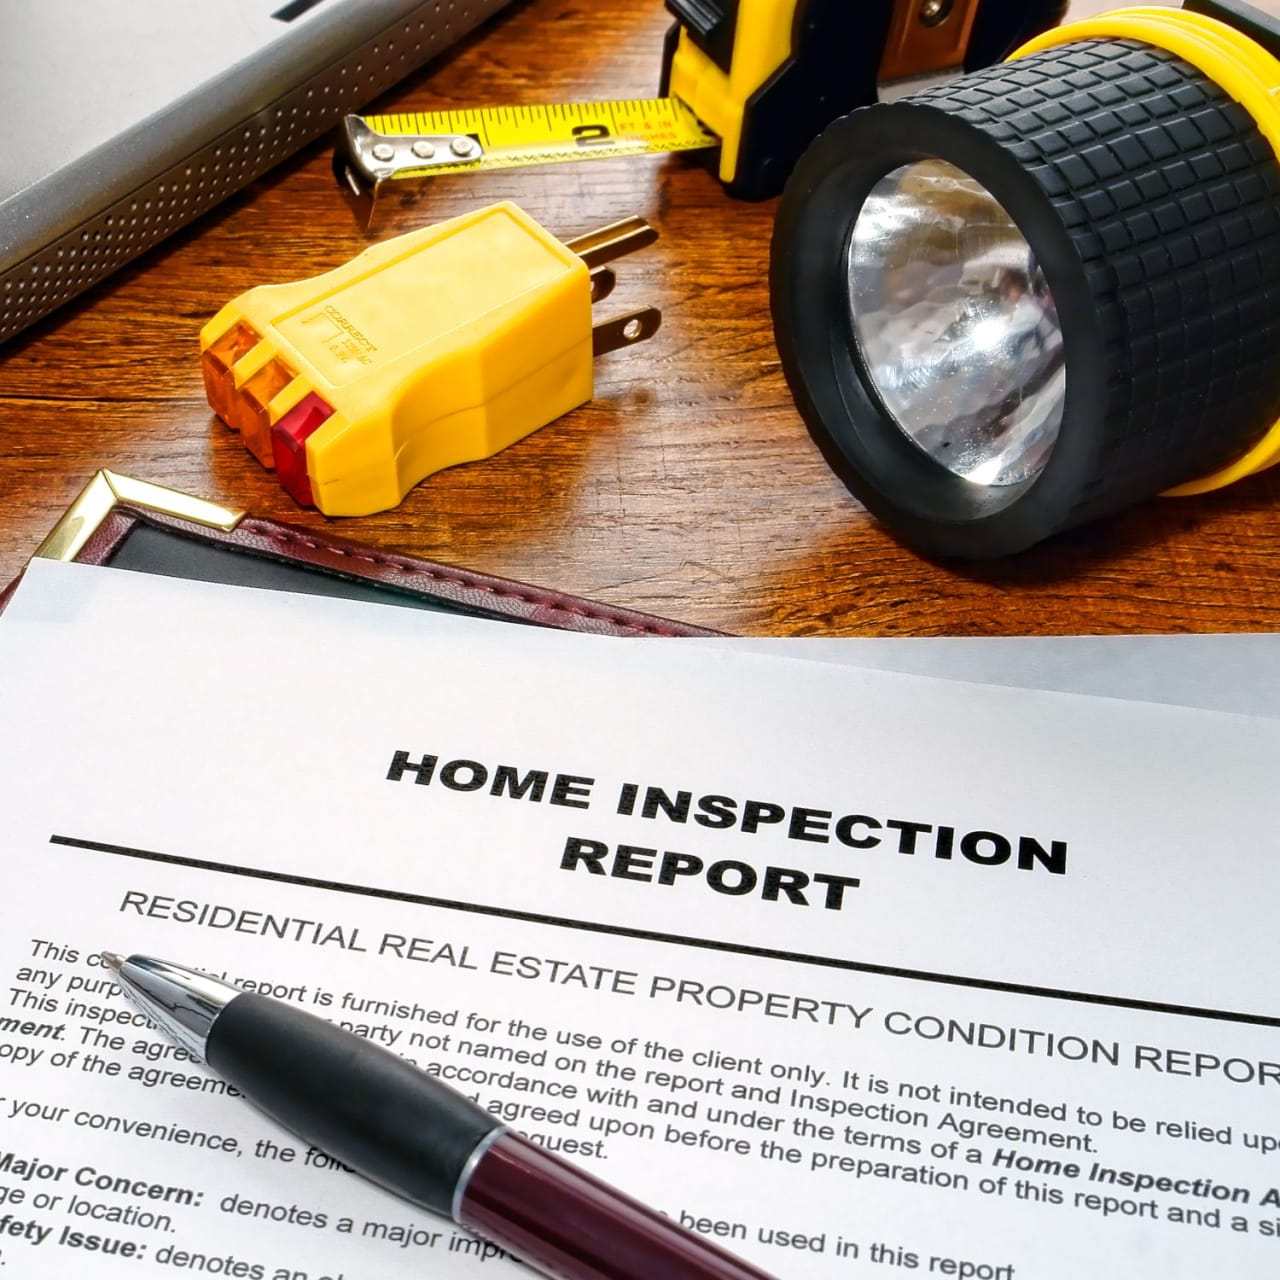 OTG Insights - Home Inspections - What Do You Think?